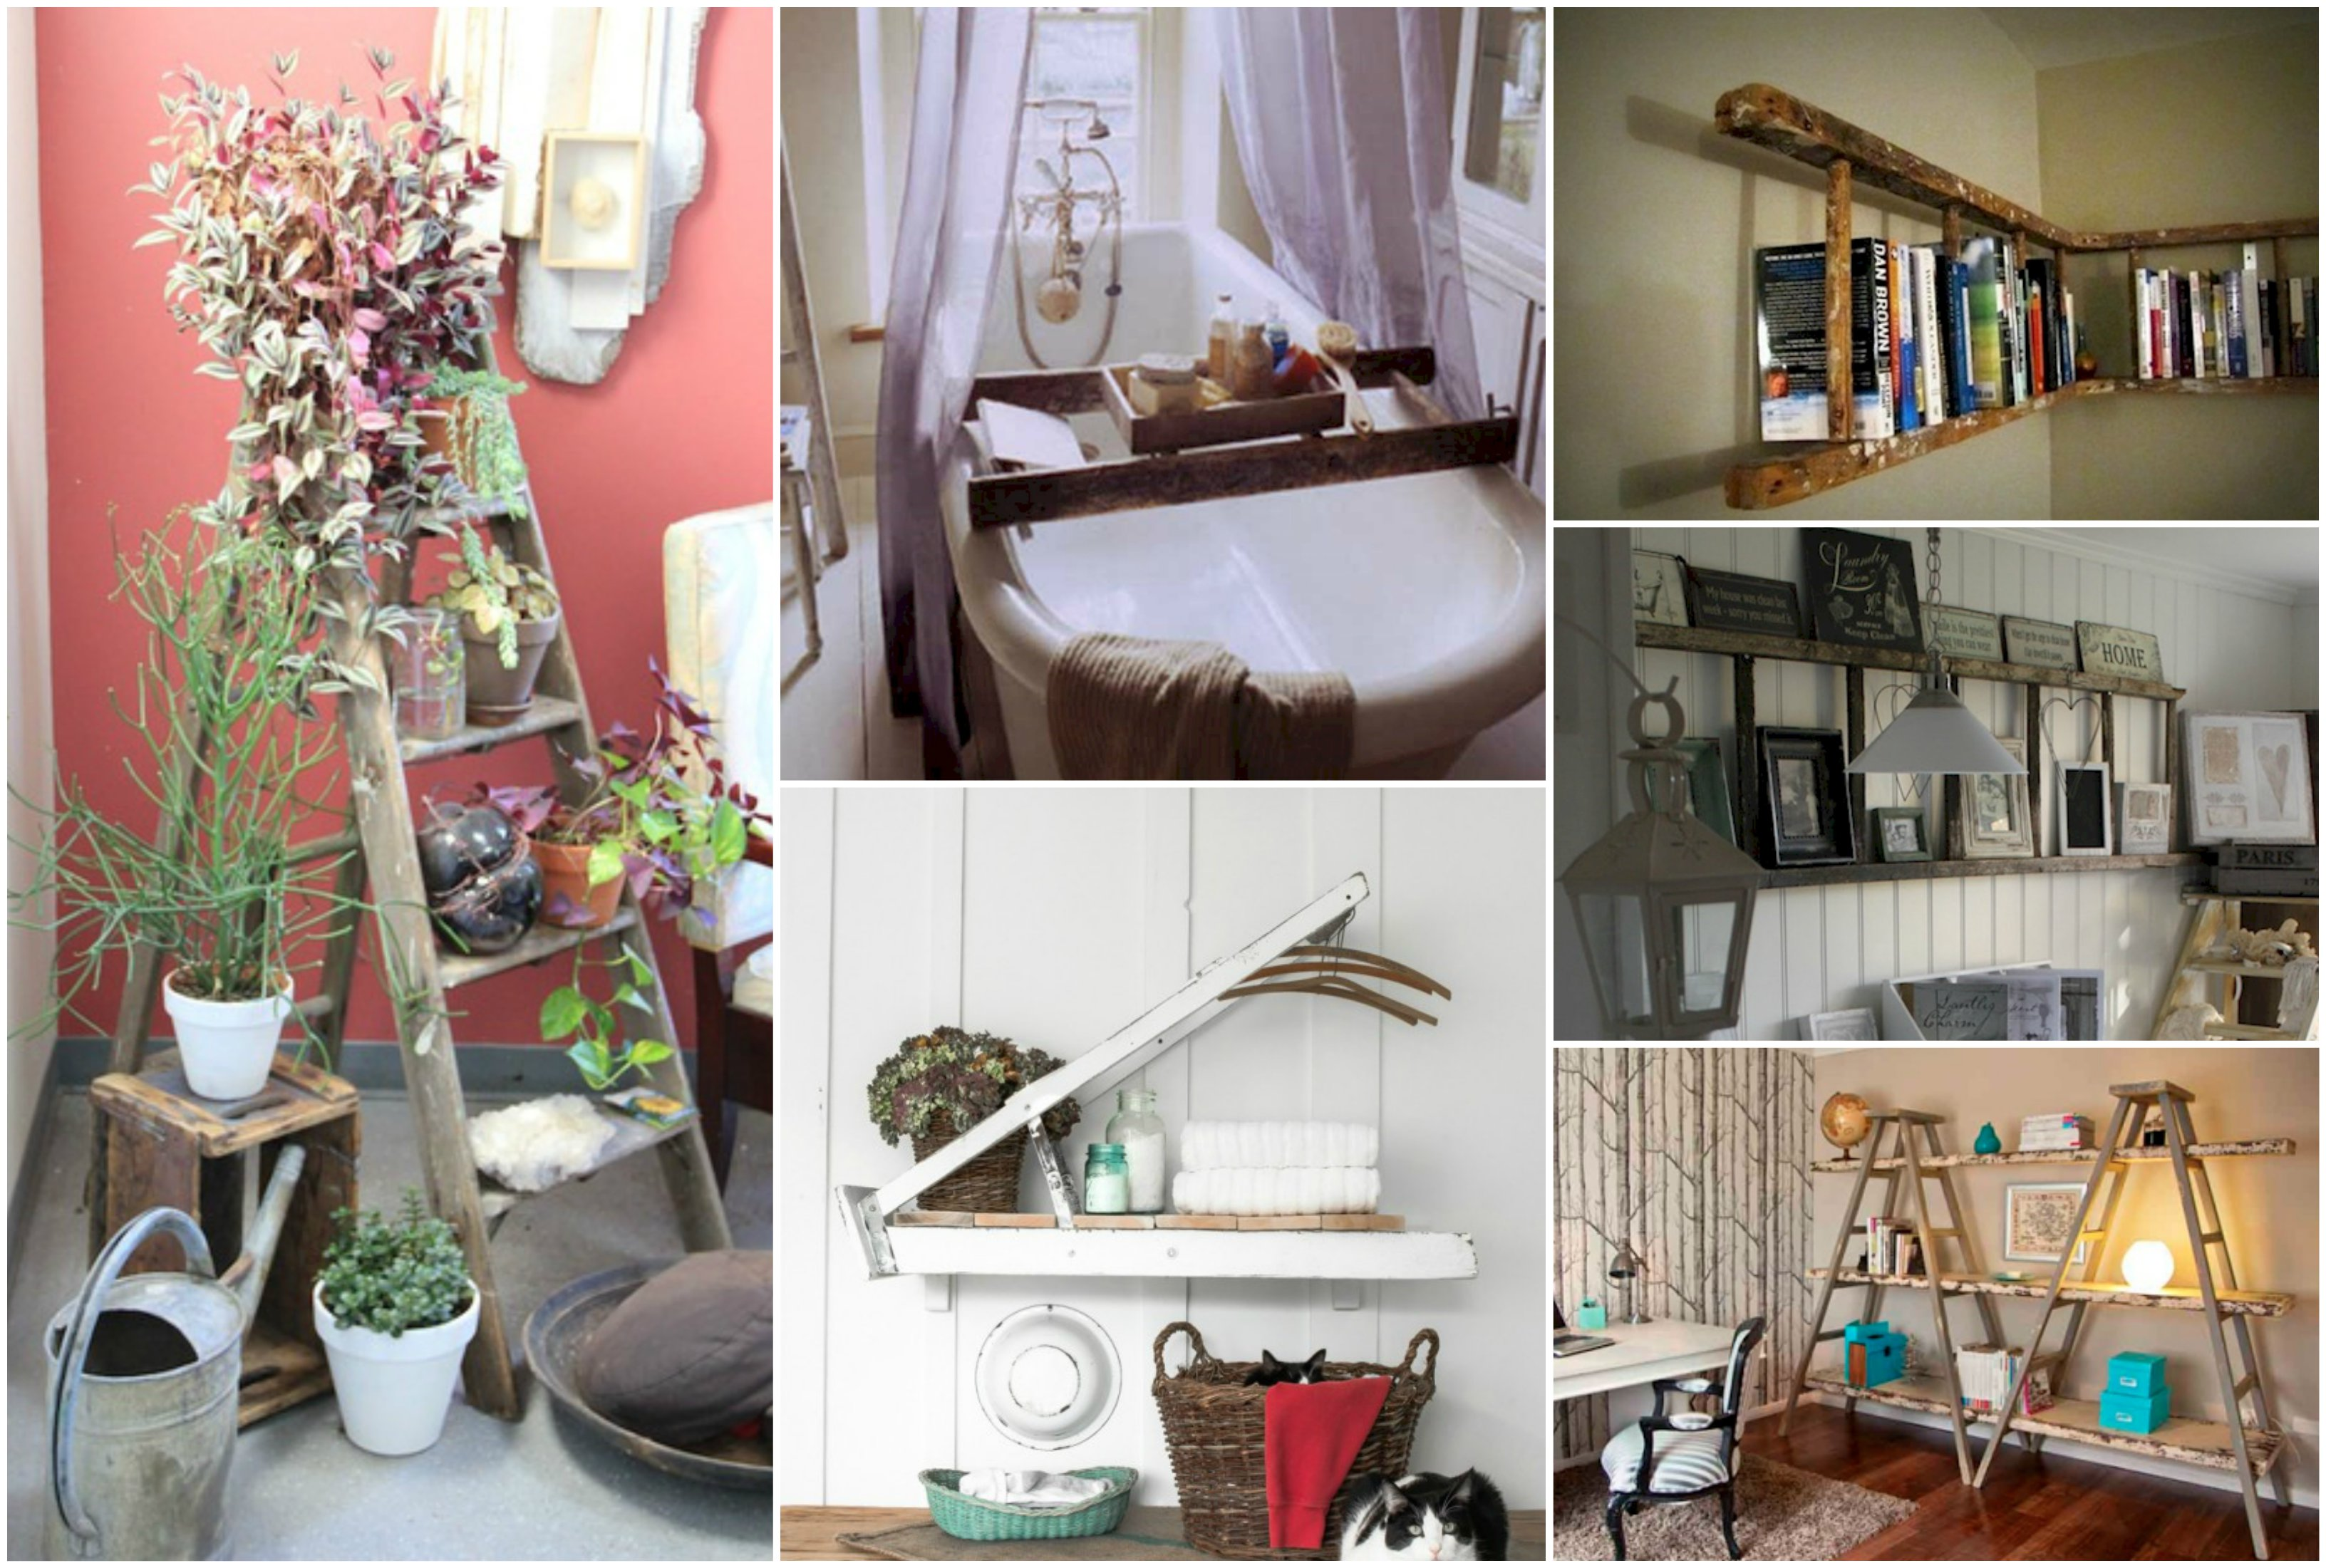 20+ Creative Ways to Use Ladders for Home Decorating